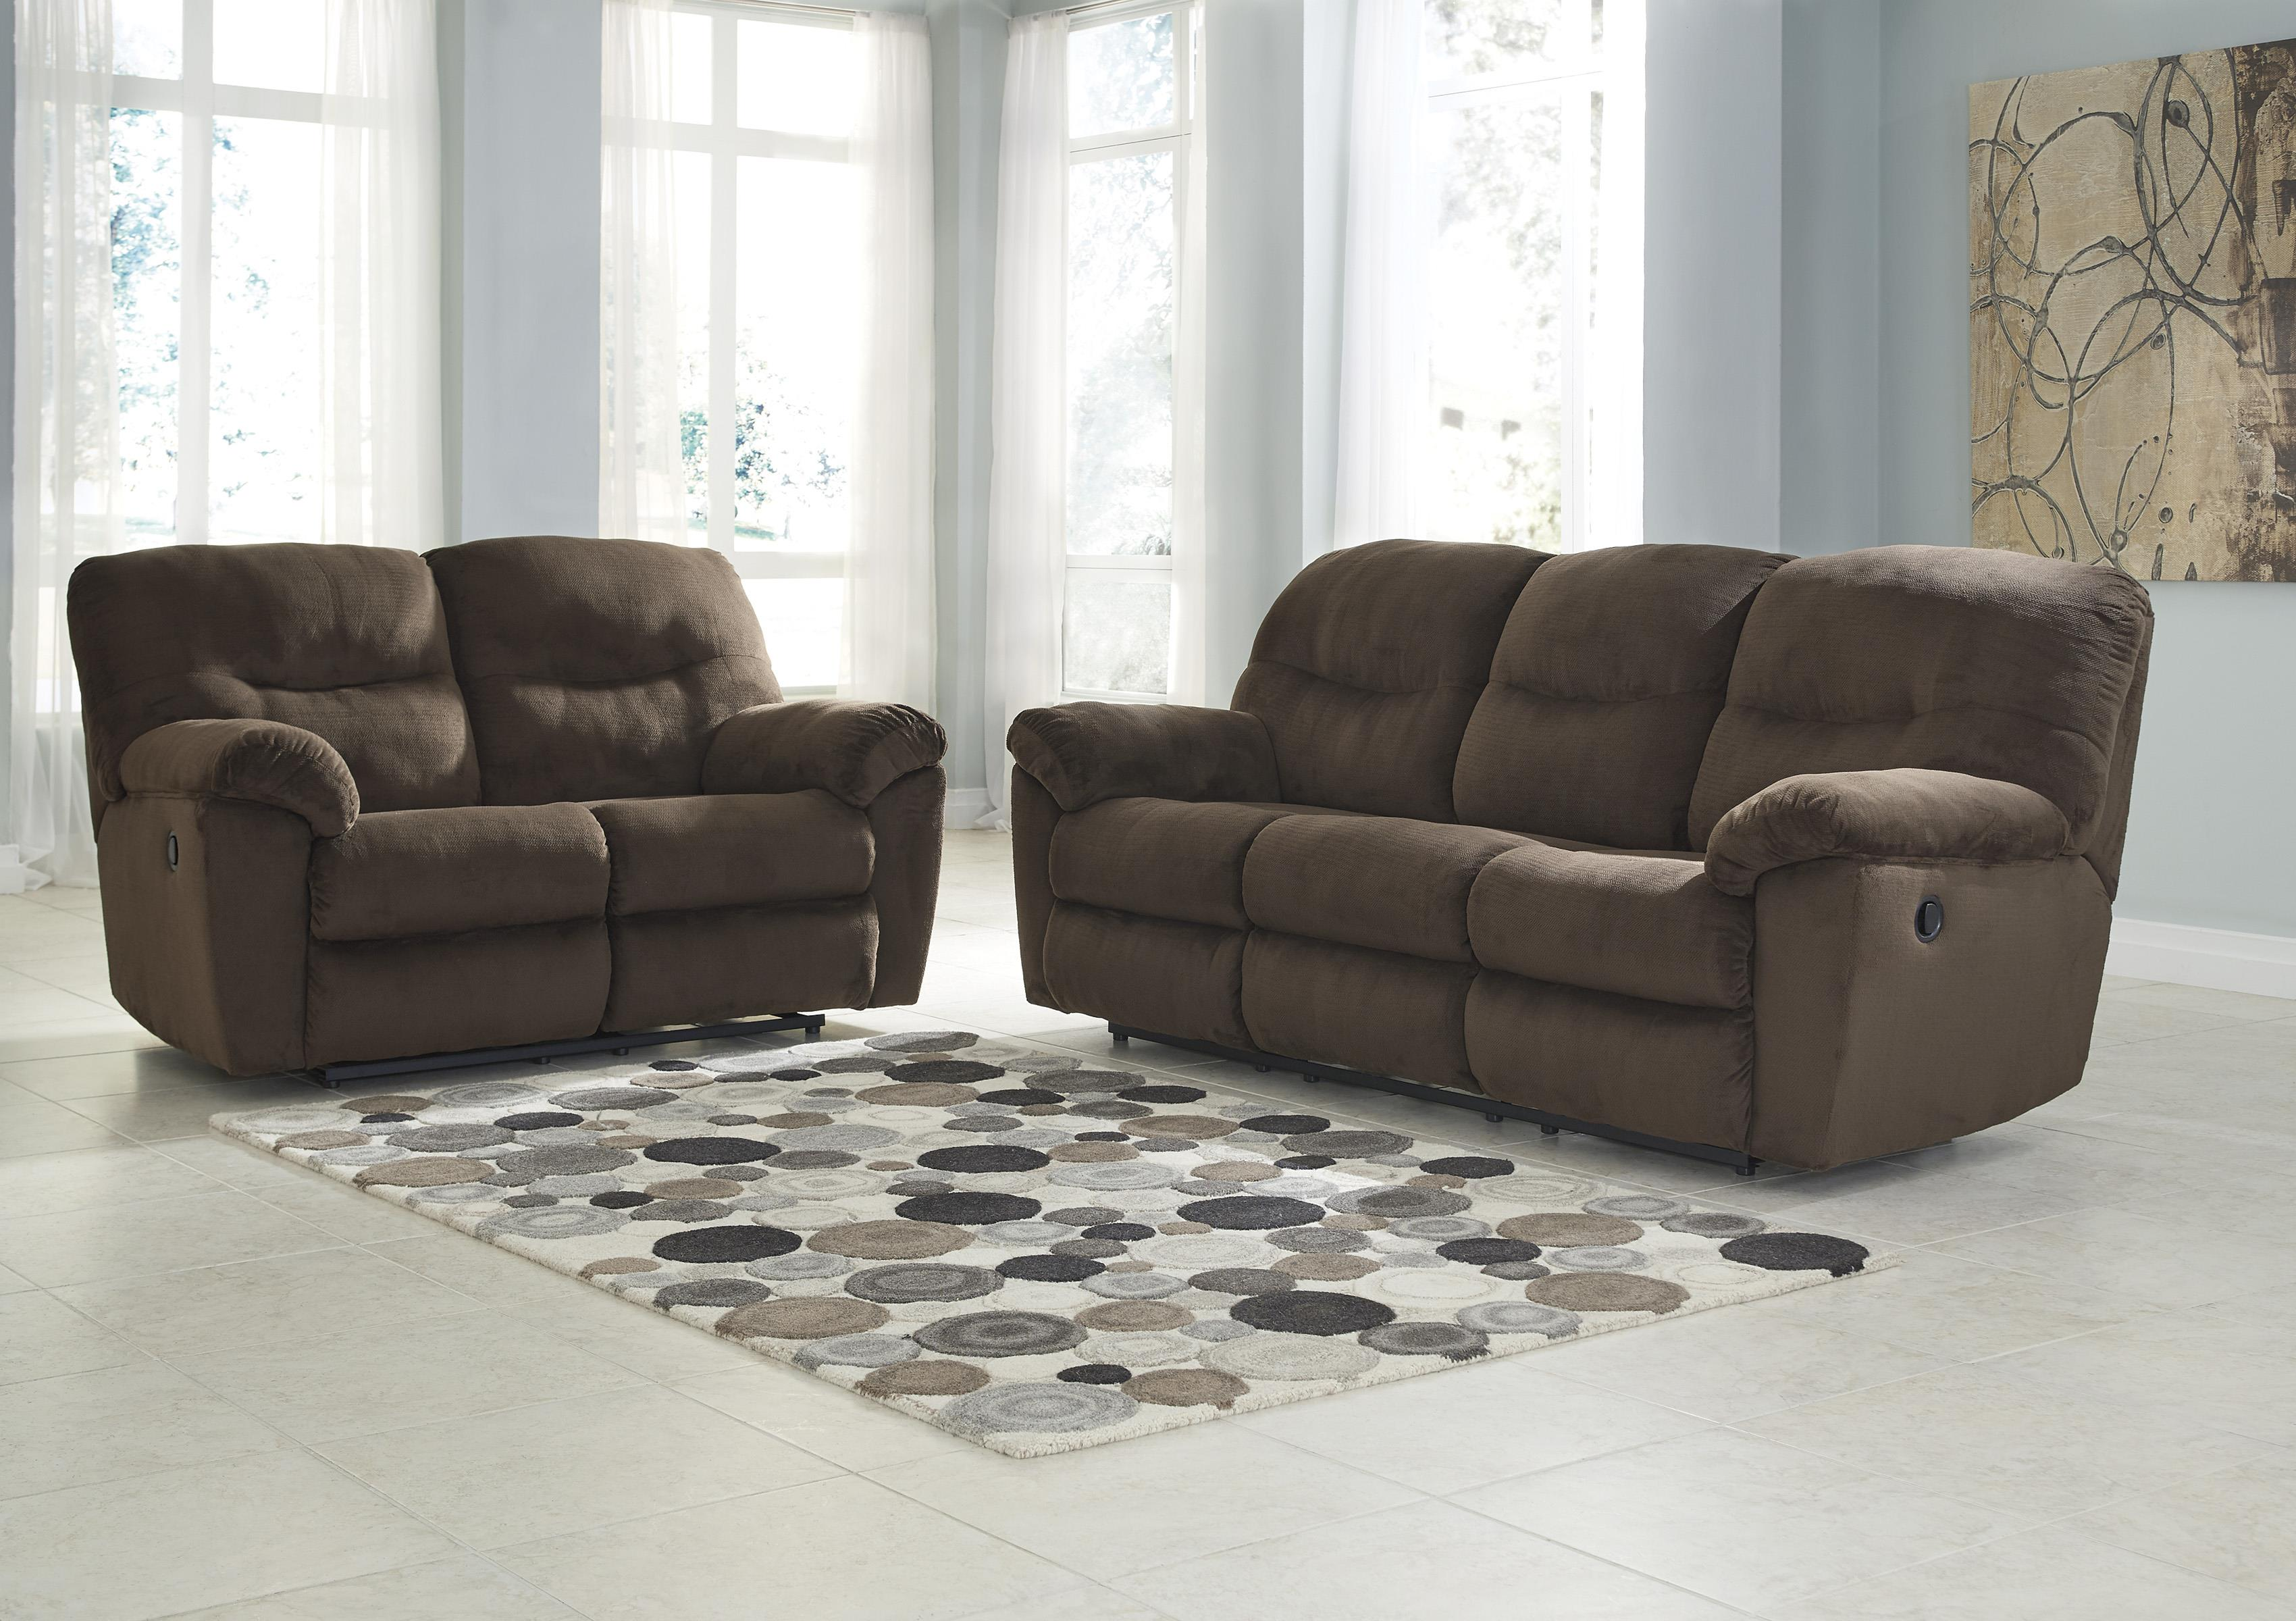 Signature Design by Ashley Slidell Reclining Living Room Group - Item Number: 82702 Living Room Group 1